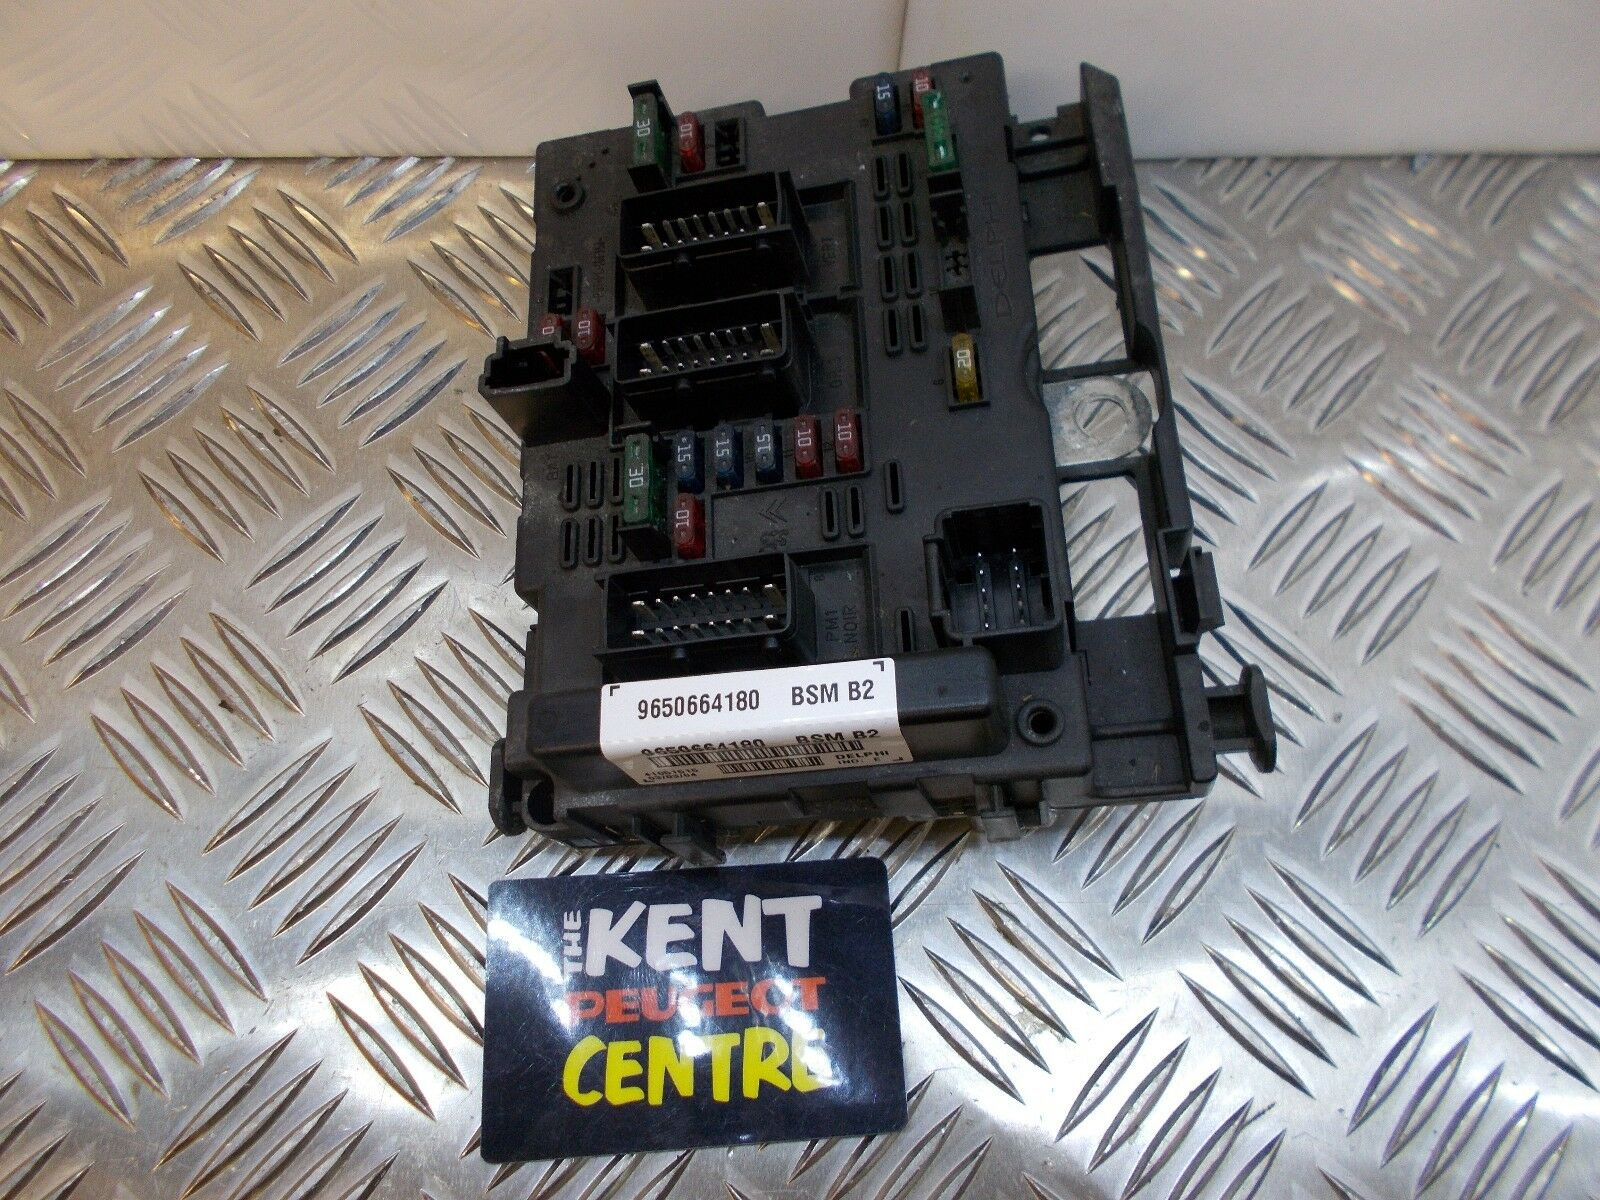 Peugeot 307 Fuse Box 20 Hdi Manual Bhp 885 2005 206 Under Bonnet Norton Secured Powered By Verisign